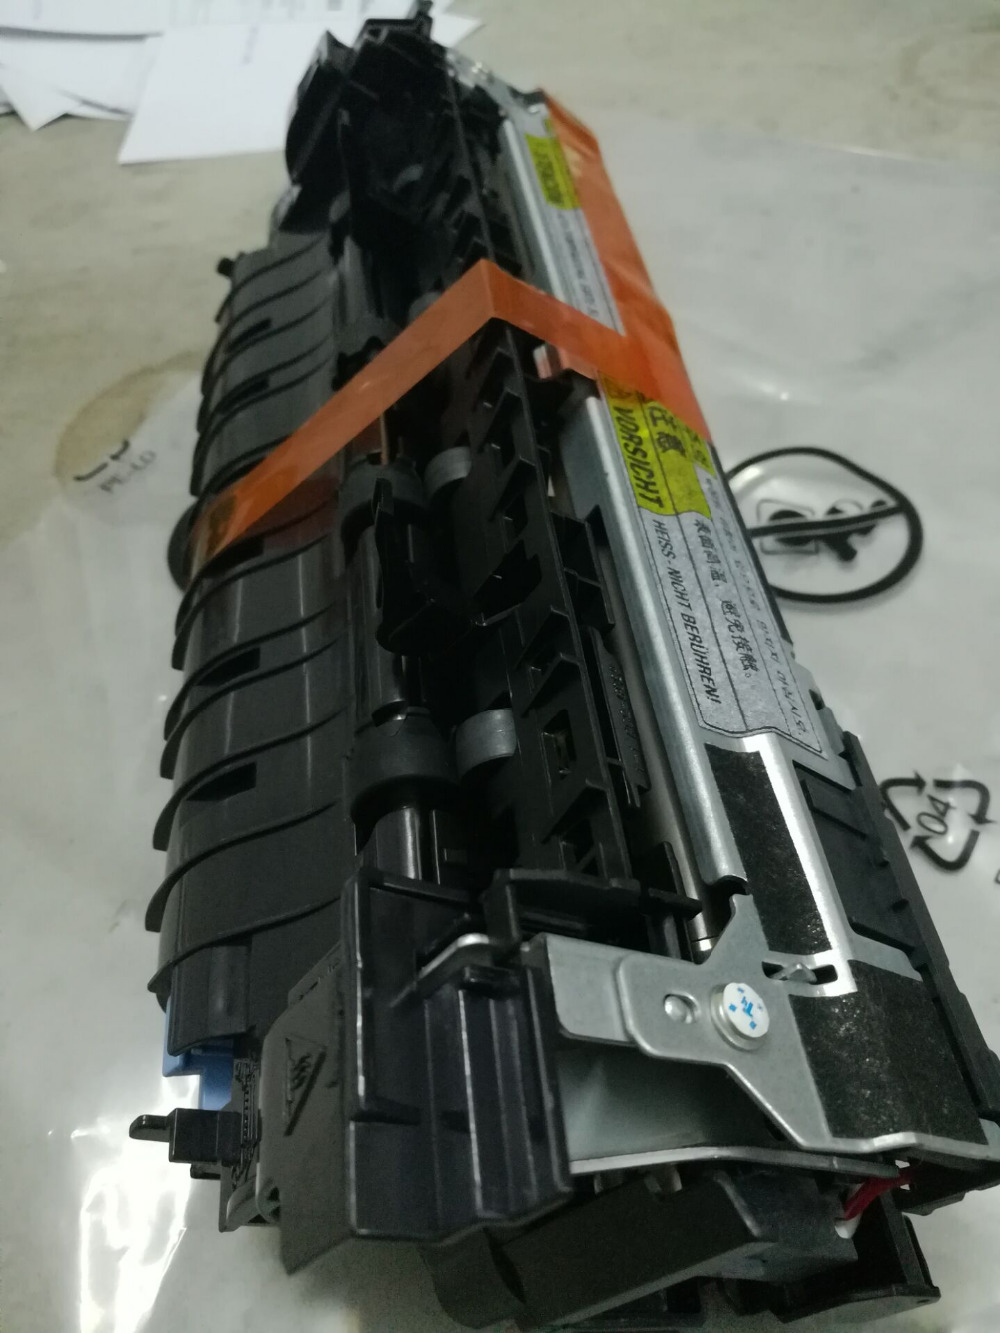 95%new Original RM2-6342 E6B67-67902(200v) RM2-6308 E6B67-67901(100V) Fuser Assembly For HP Laserjet M604/M605/M606 Heating Unit запонка arcadio rossi запонки со смолой 2 b 1026 20 e